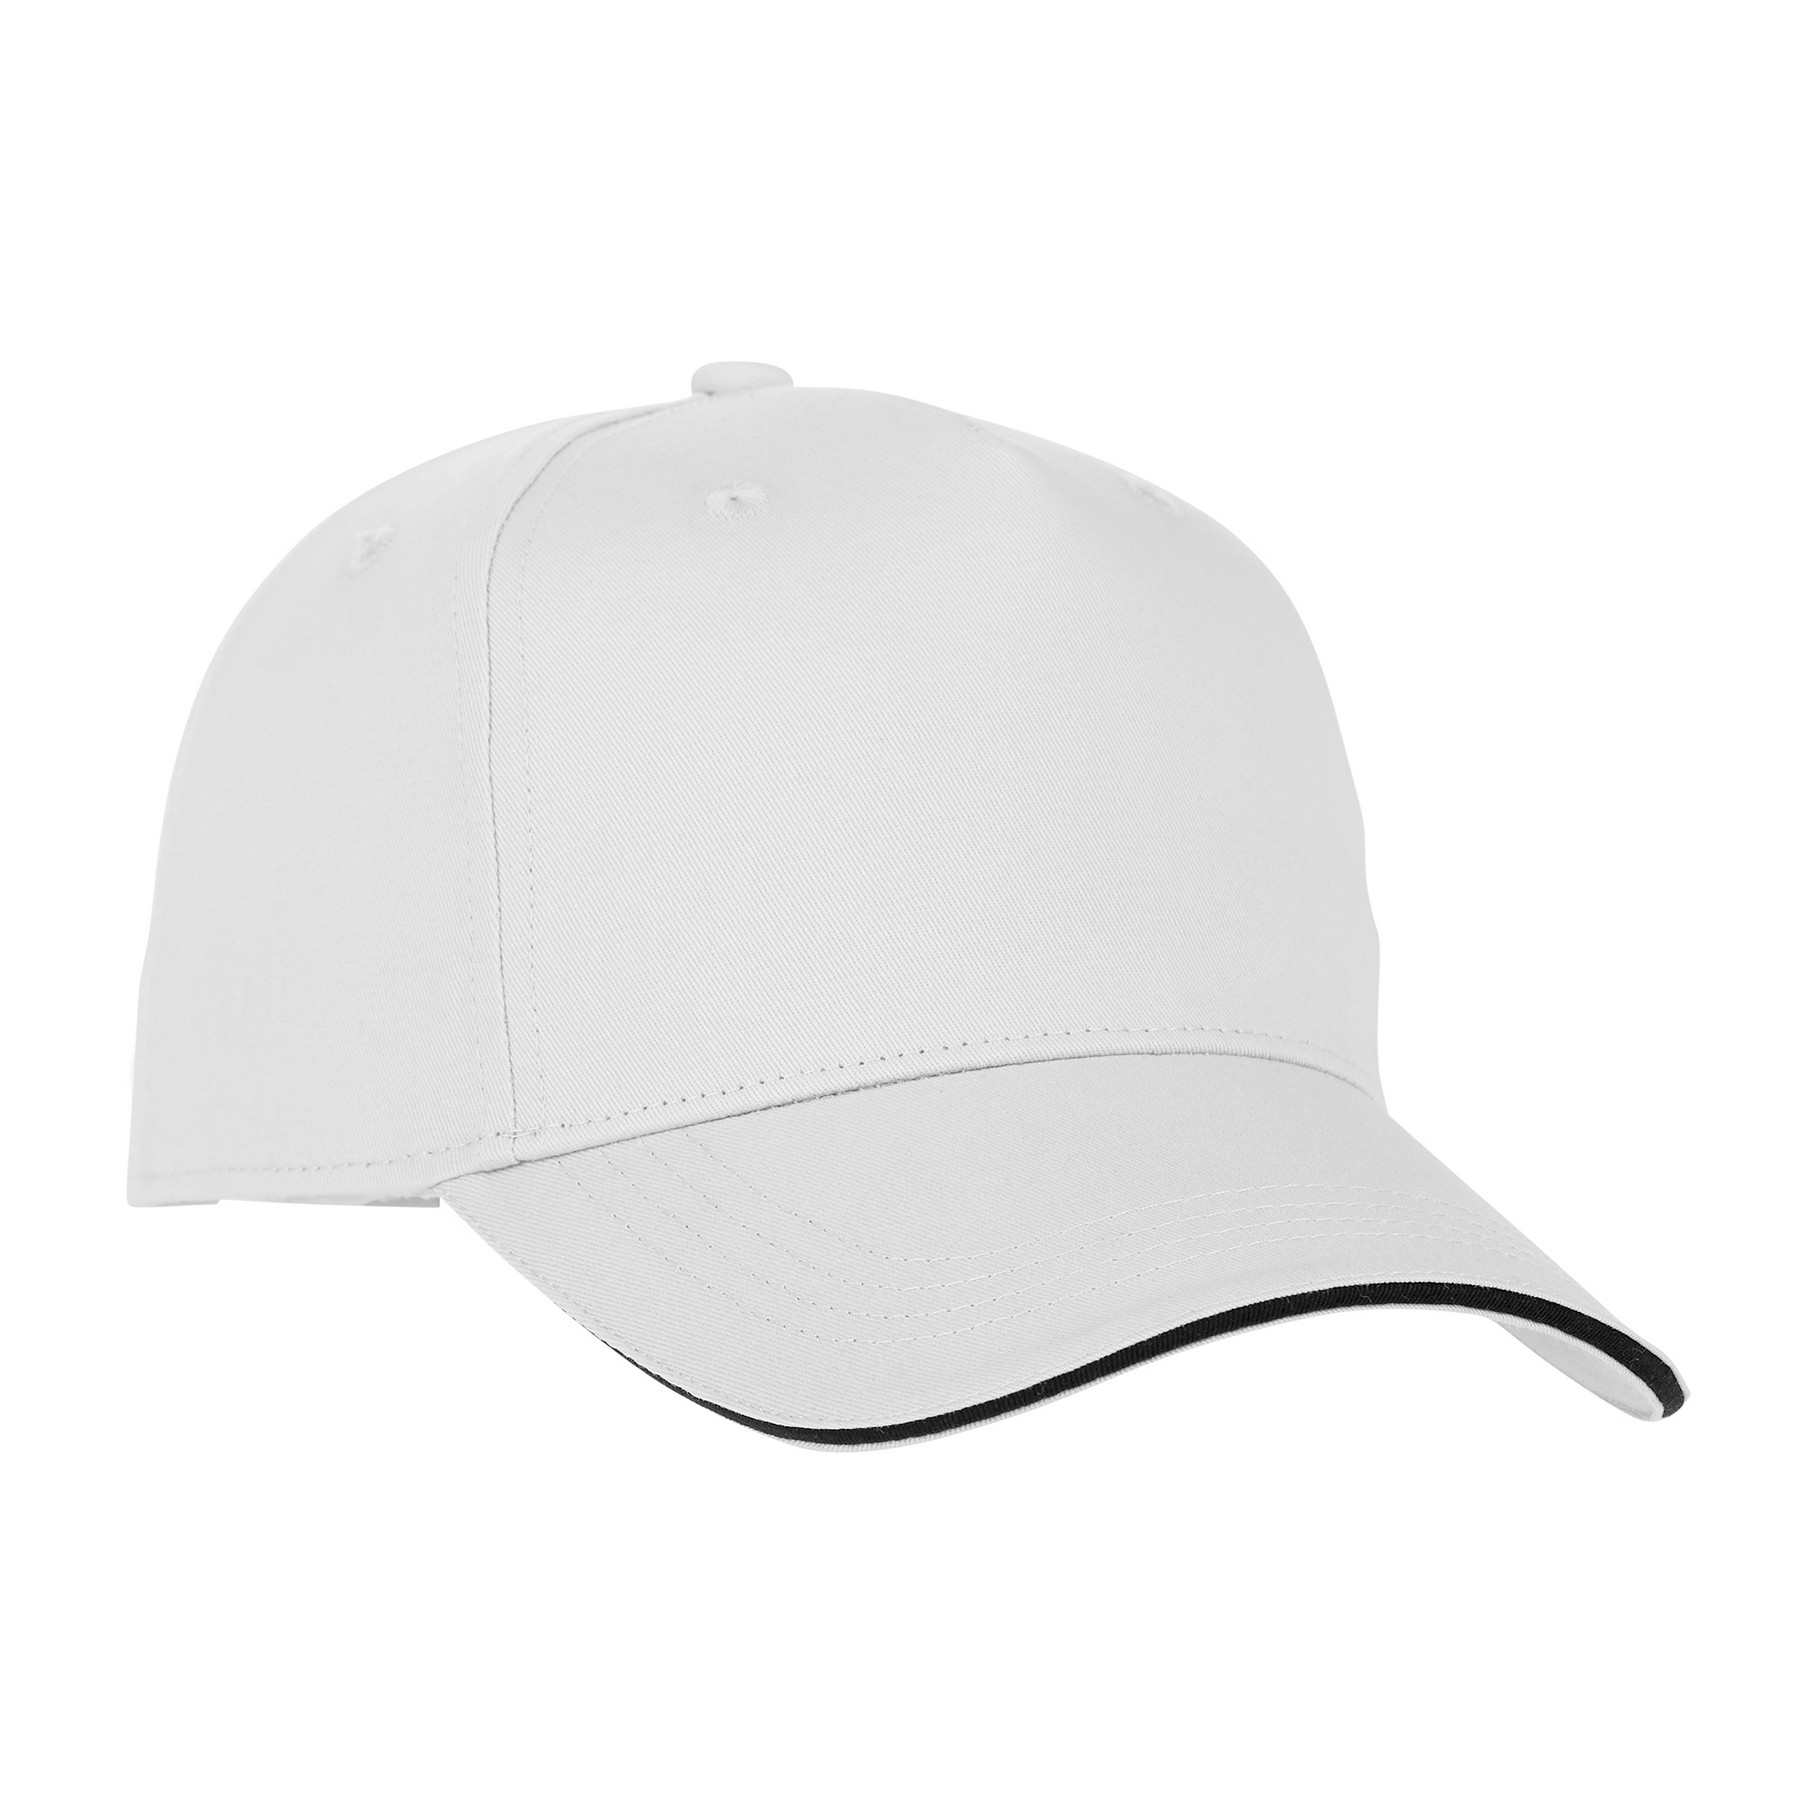 Zest Ballcap, #32024 - Embroidered